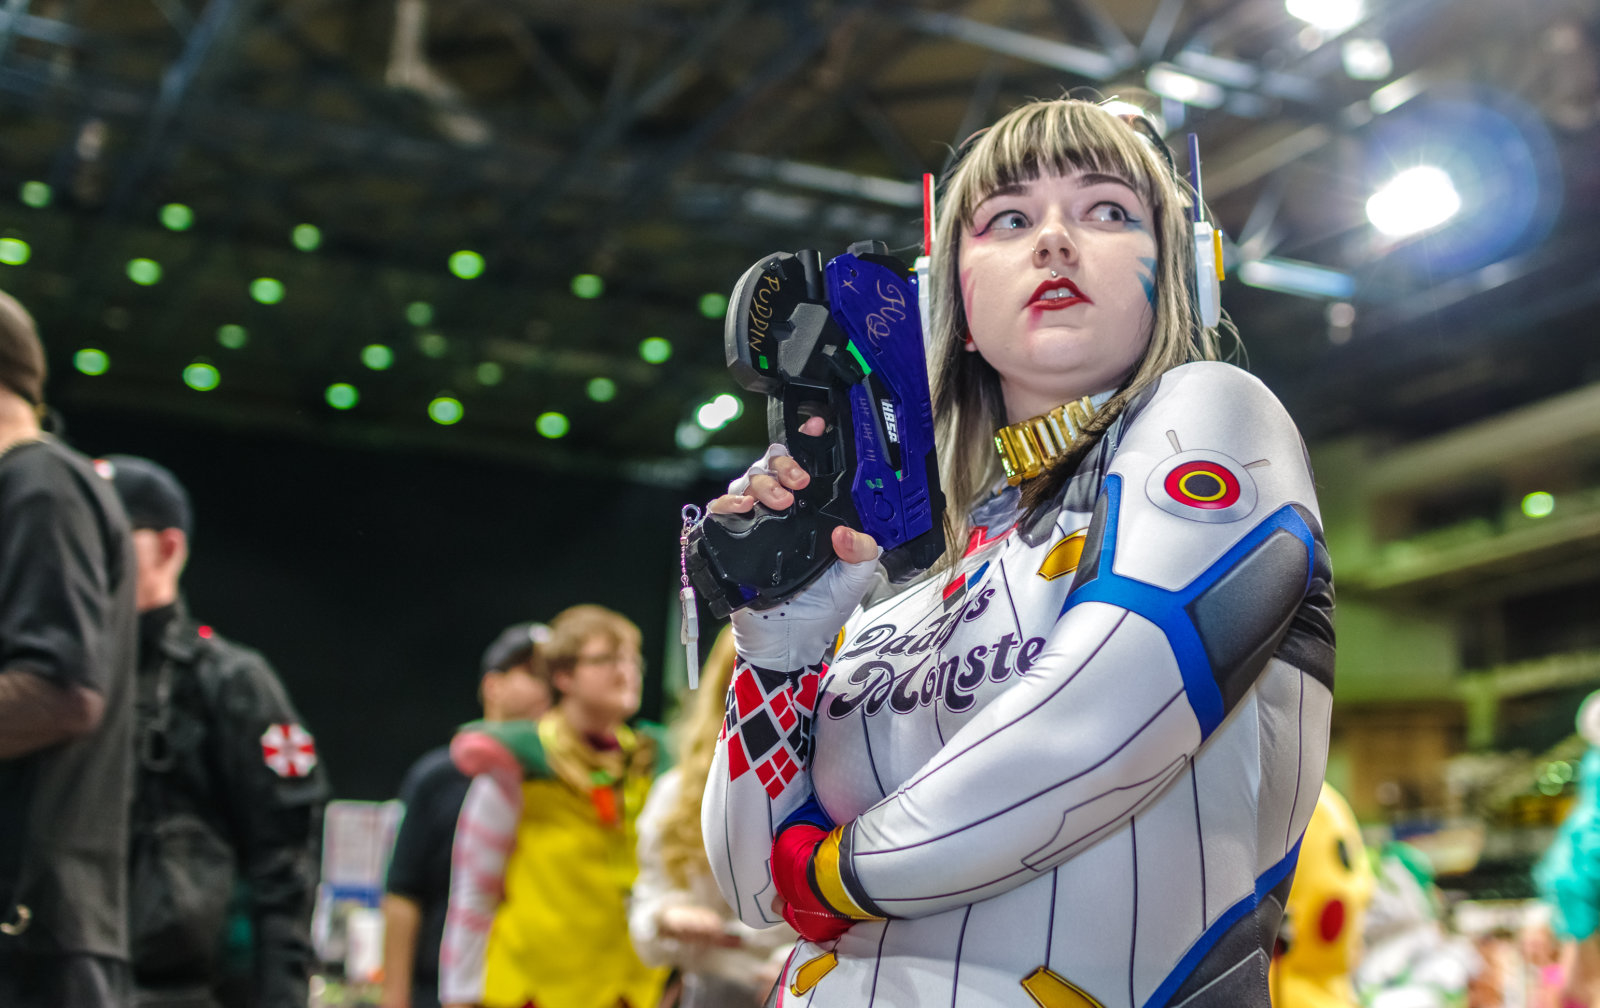 Cosplayer dressed as a mashup cosplay of 'D.Va' from the video game Overwatch and Harley Quinn from DC Comics at the Yorkshire Cosplay Con at Sheffield Arena.